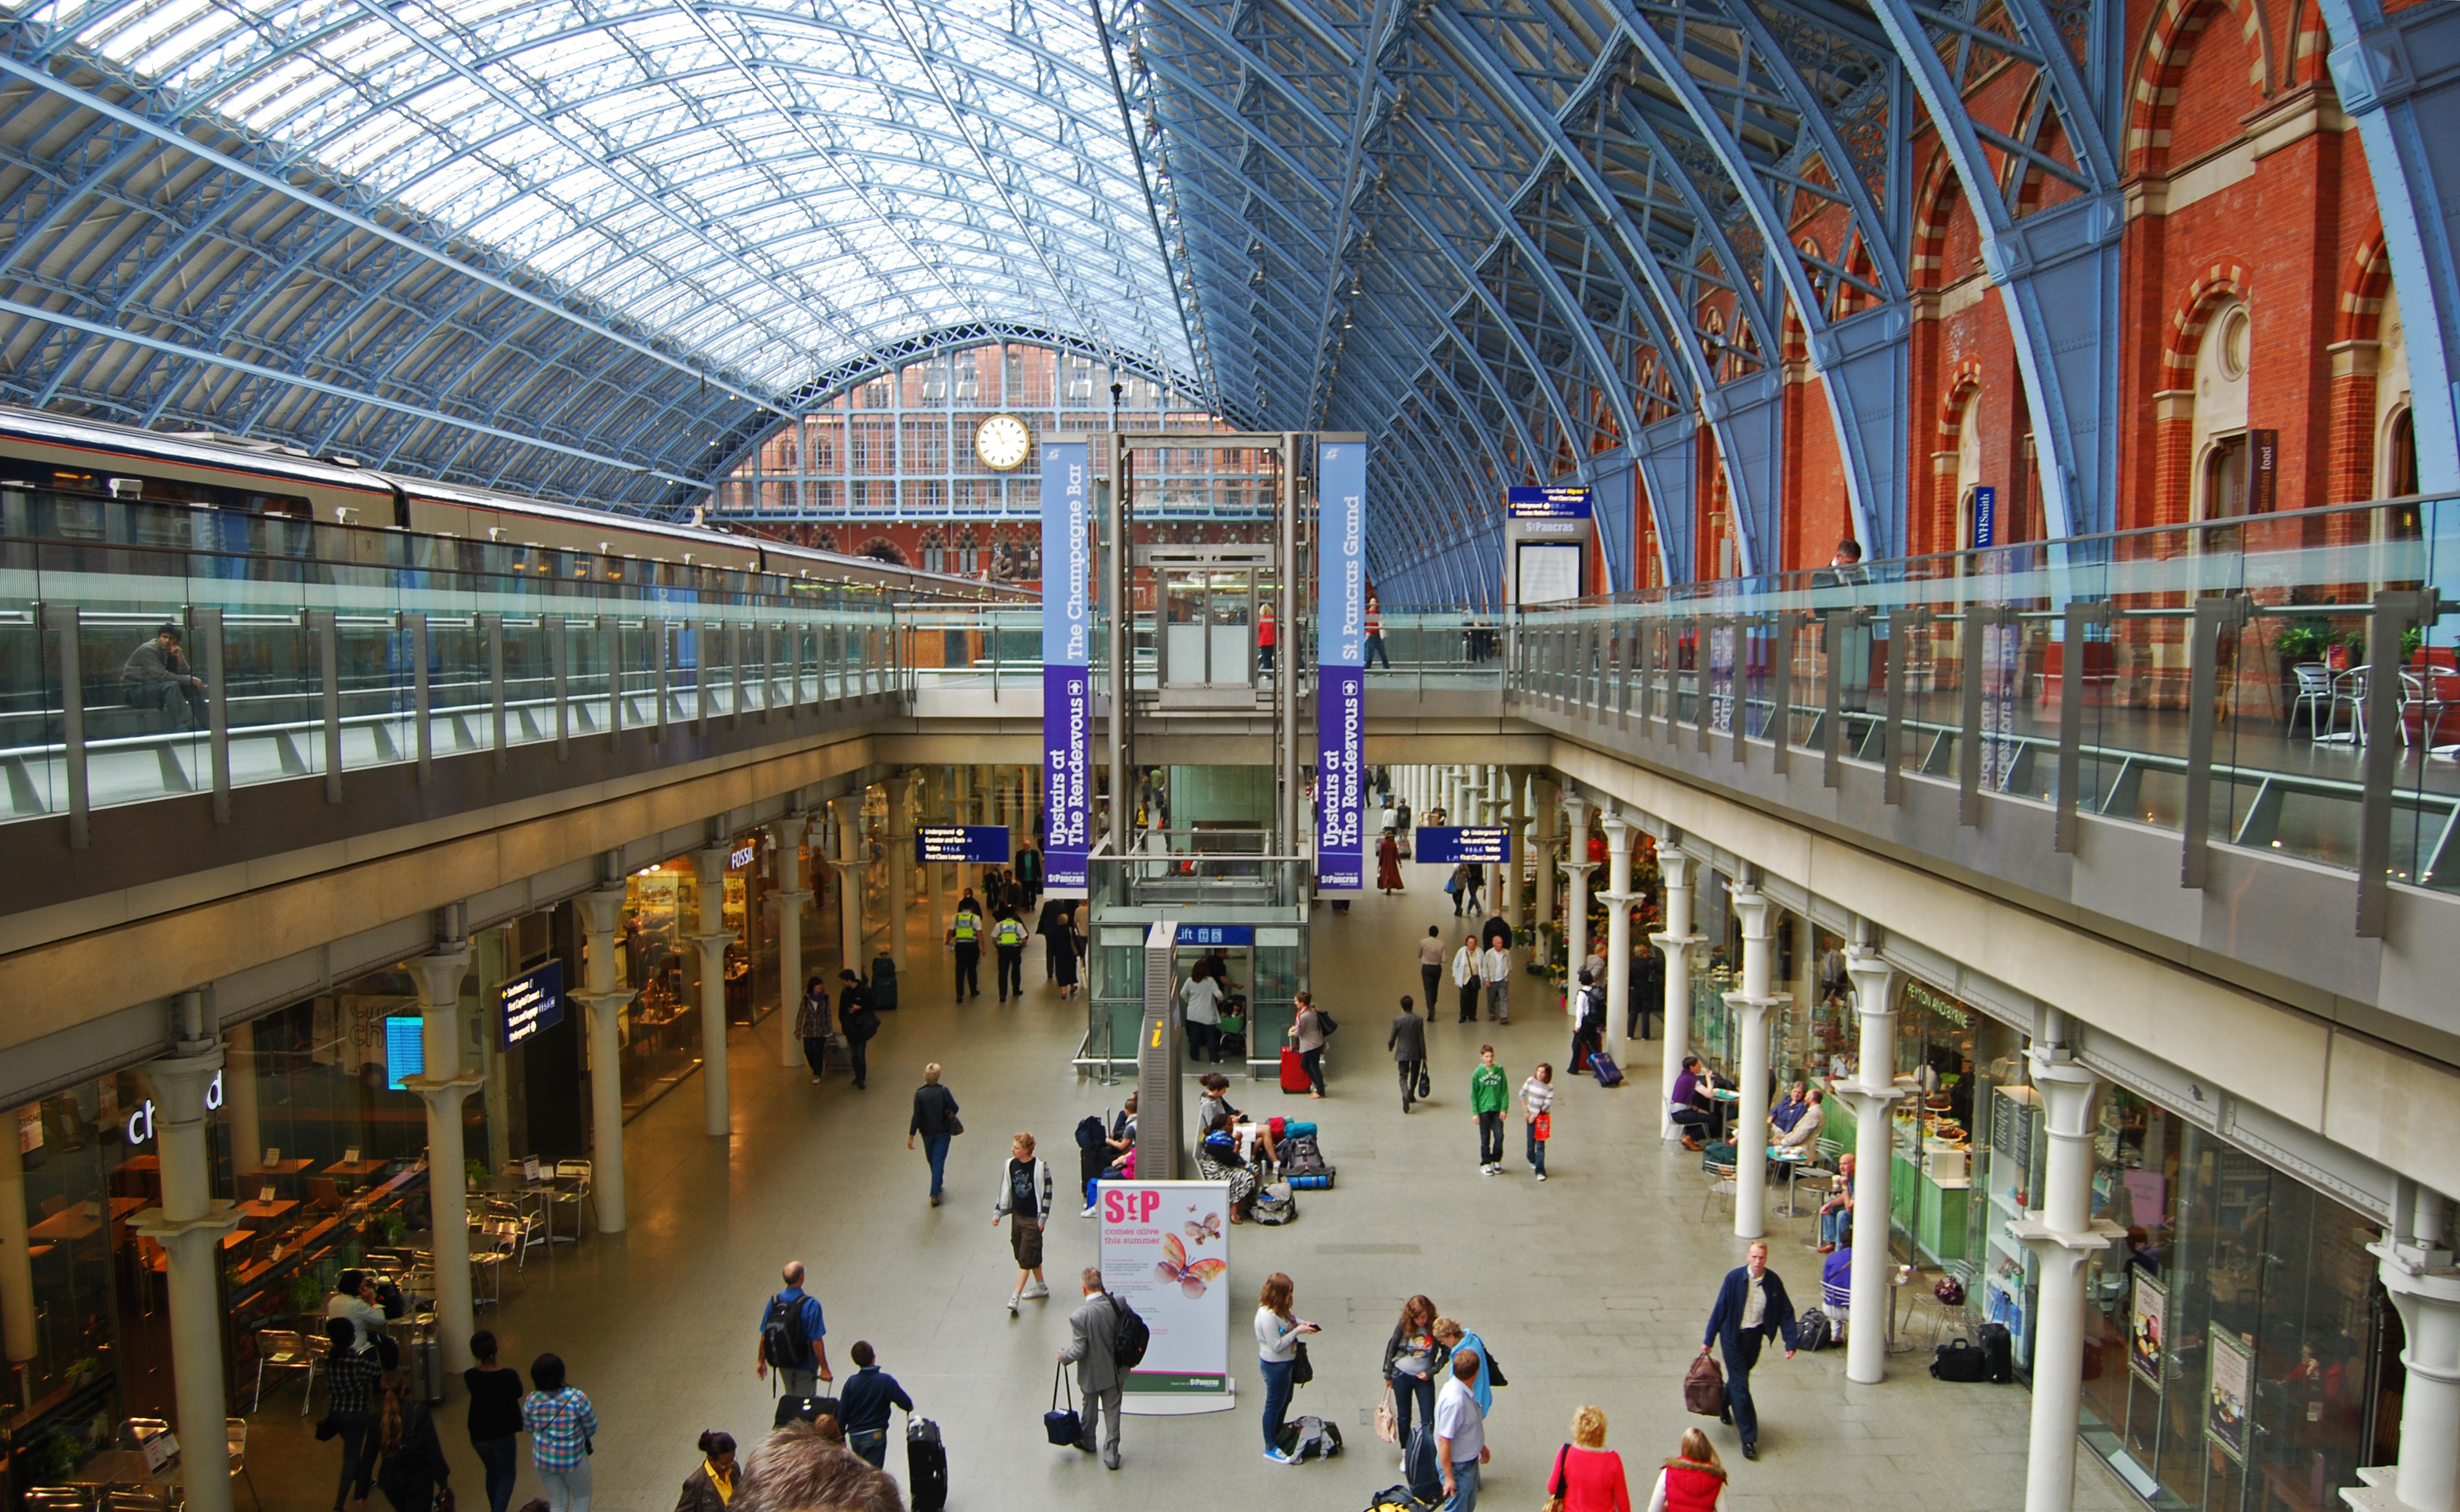 st_pancras_inside_commonswikipedia